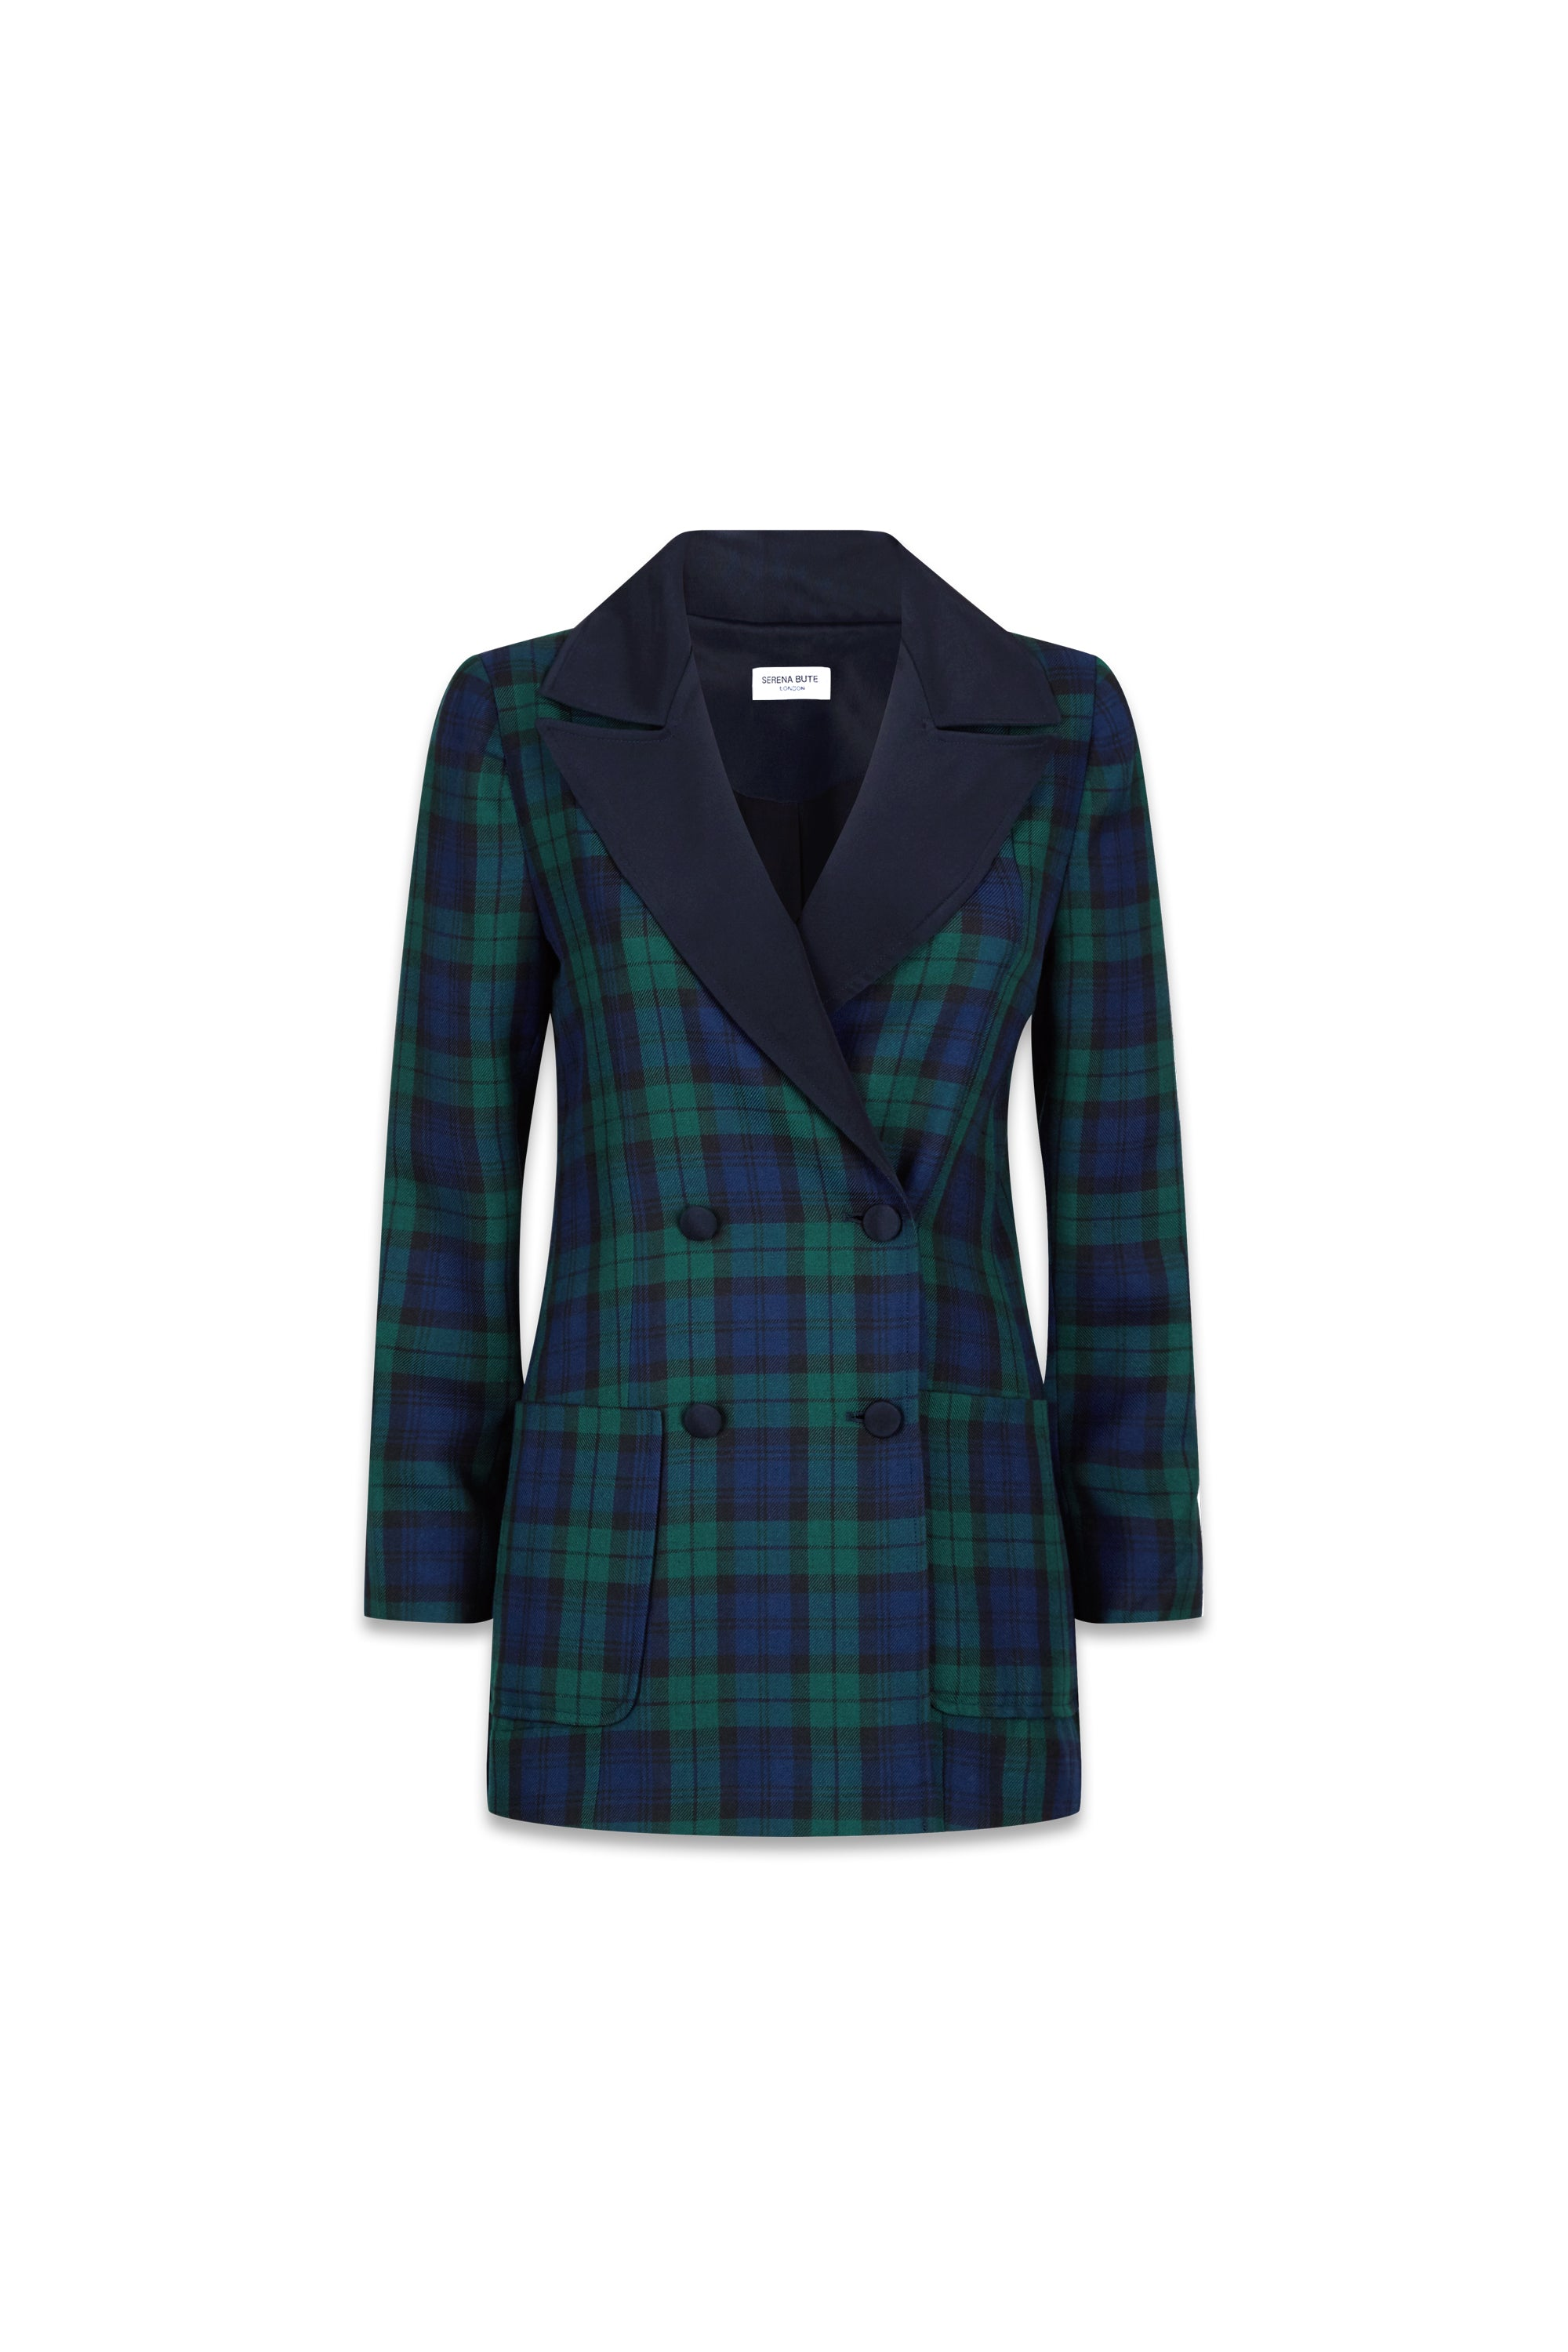 The Double Breasted Blazer - Navy & Green Plaid